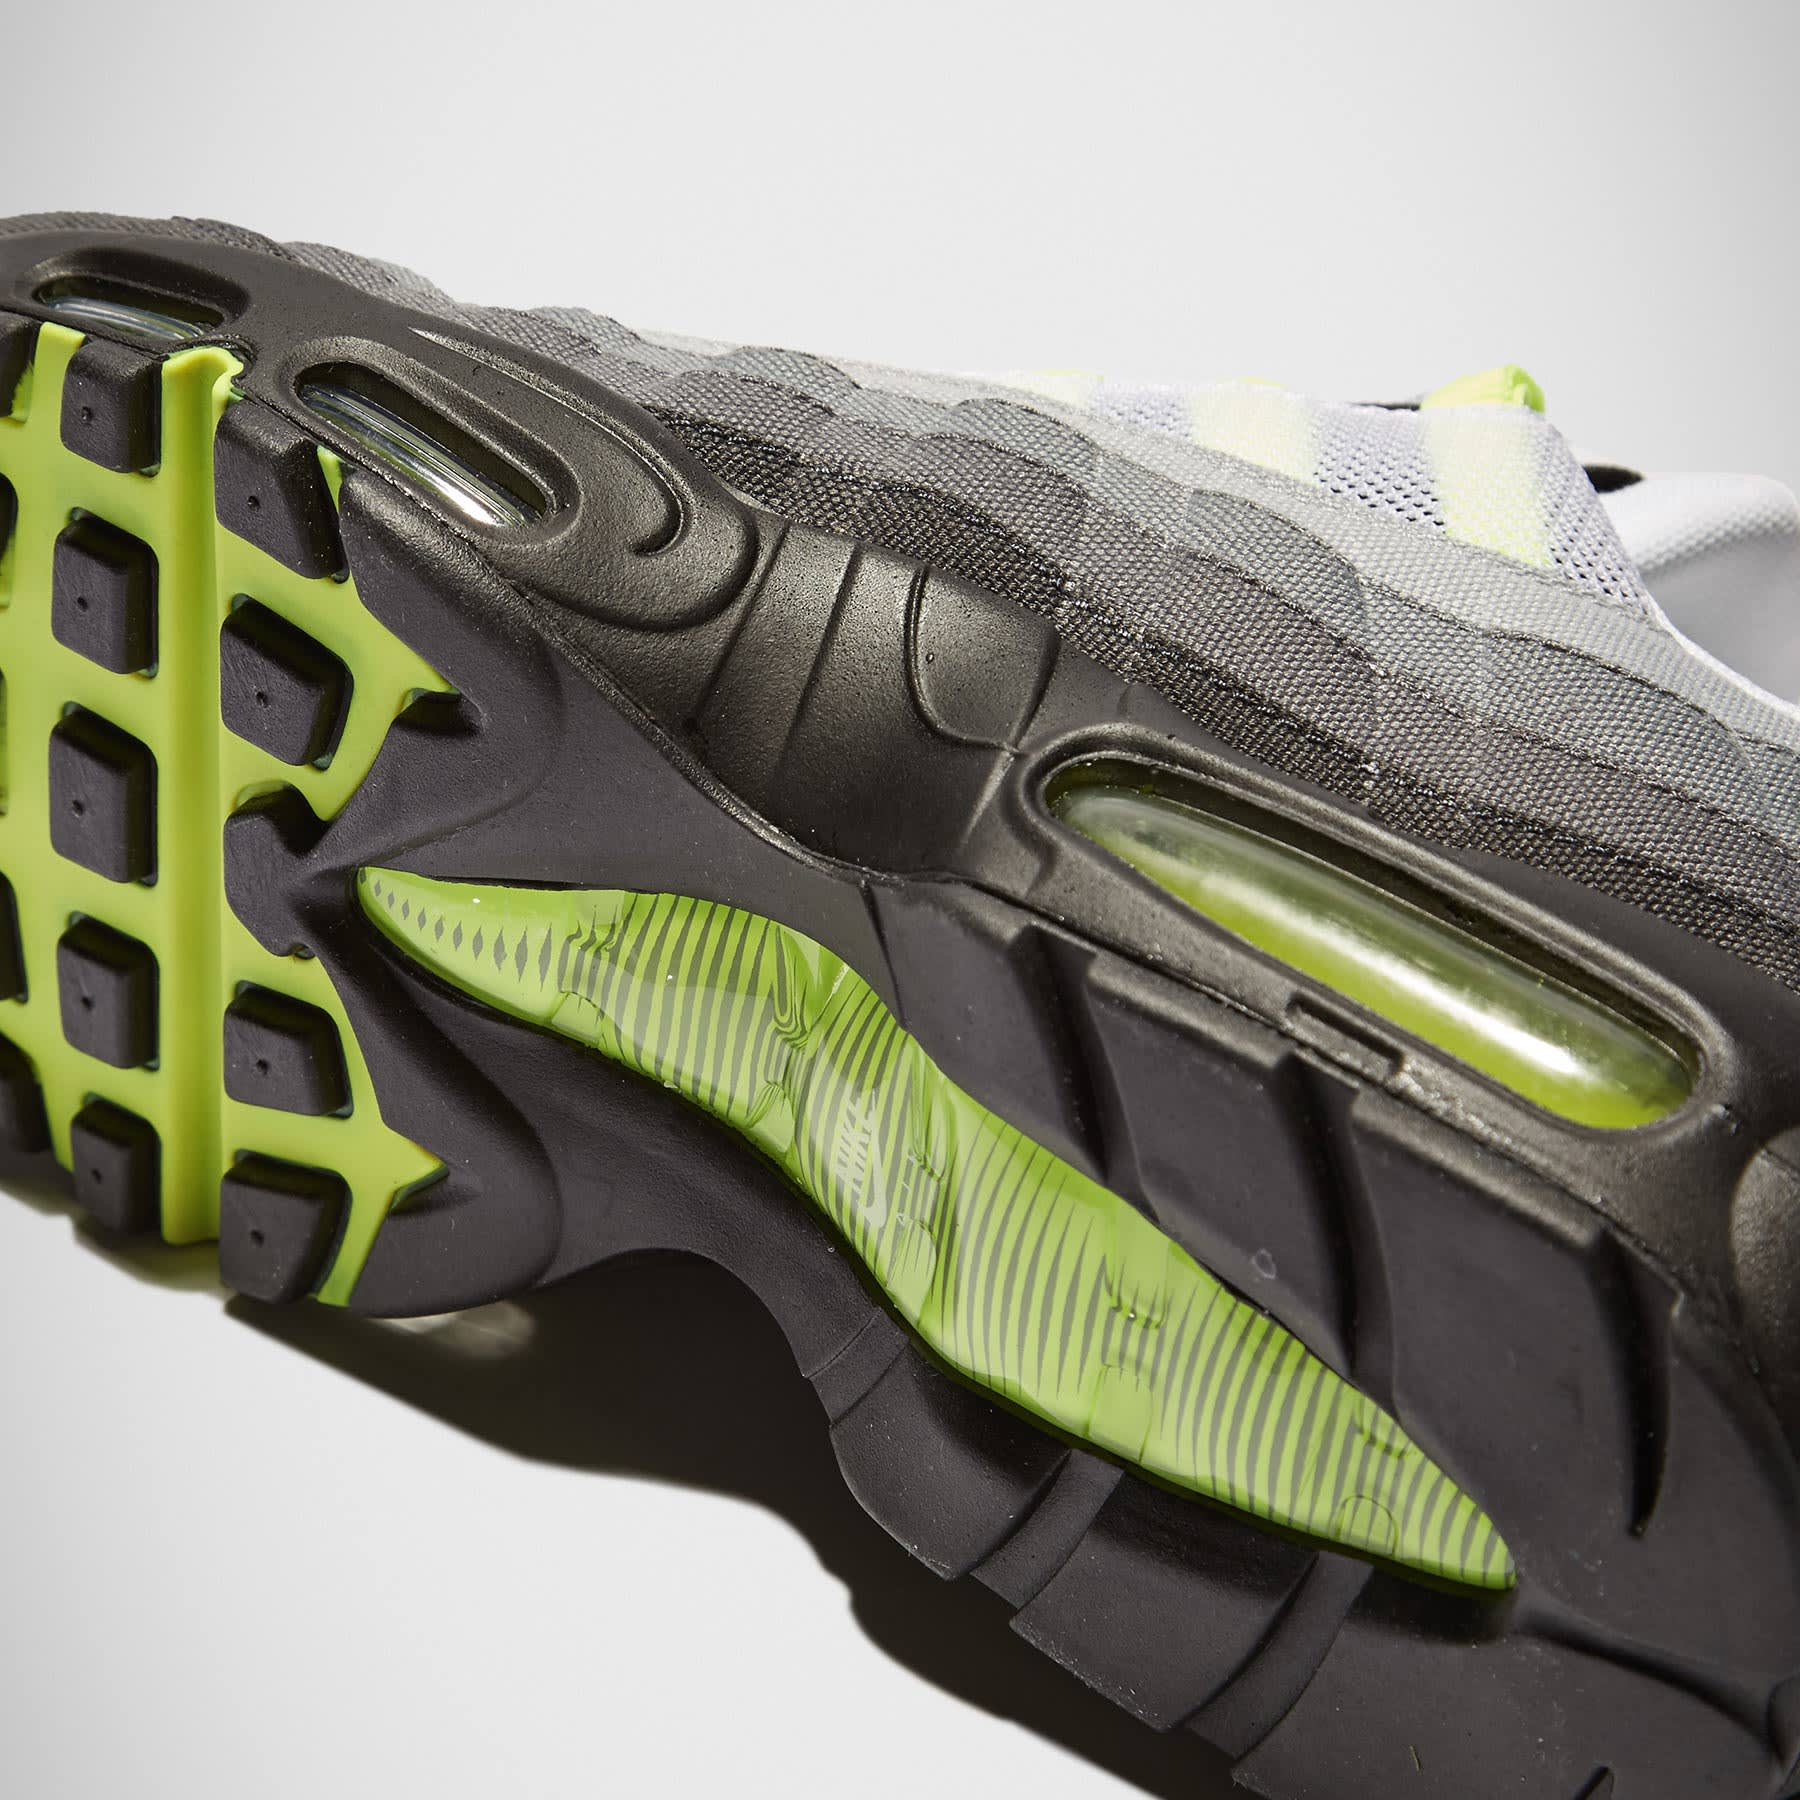 brand new b27d3 9c044 Nike Air Max 95 V SP  Patch  White, Neon Yellow   Black   END.